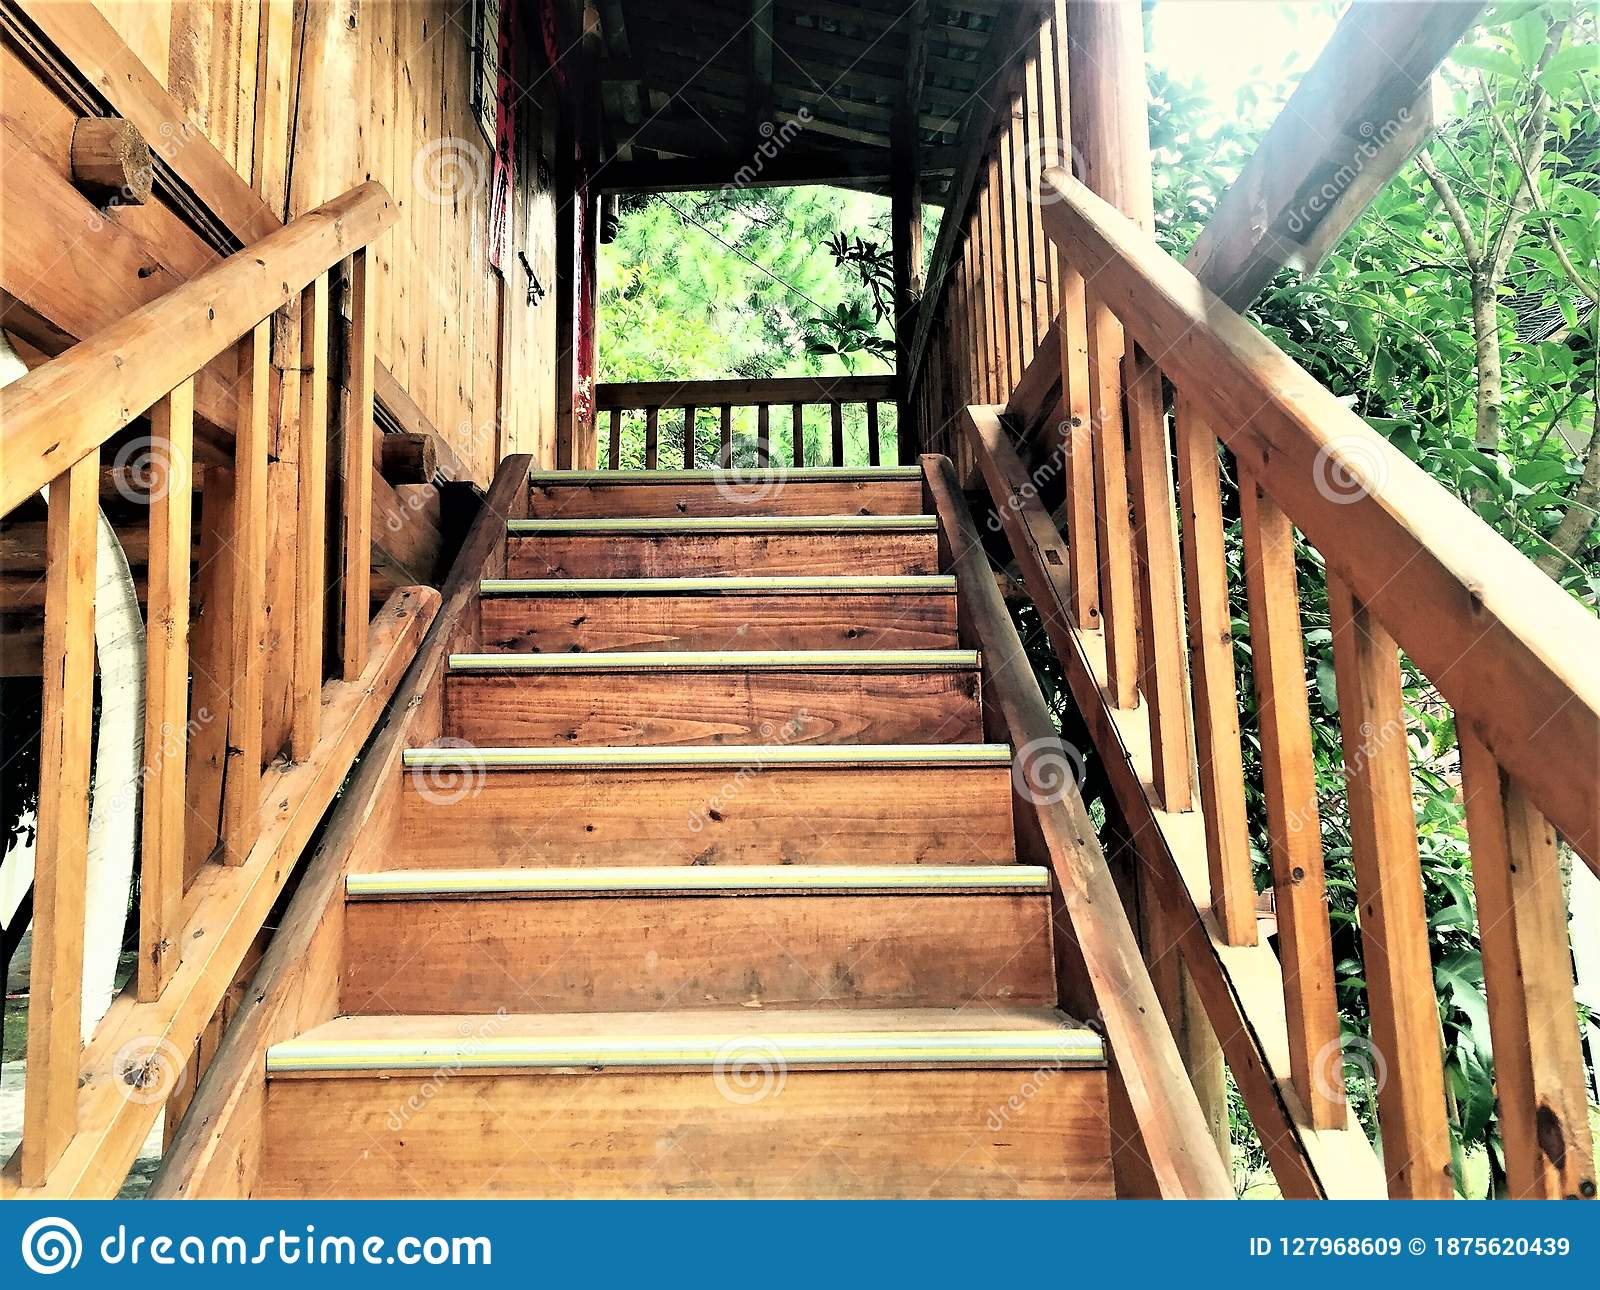 The wooden staircase made entirely by hand by Chinese minorities